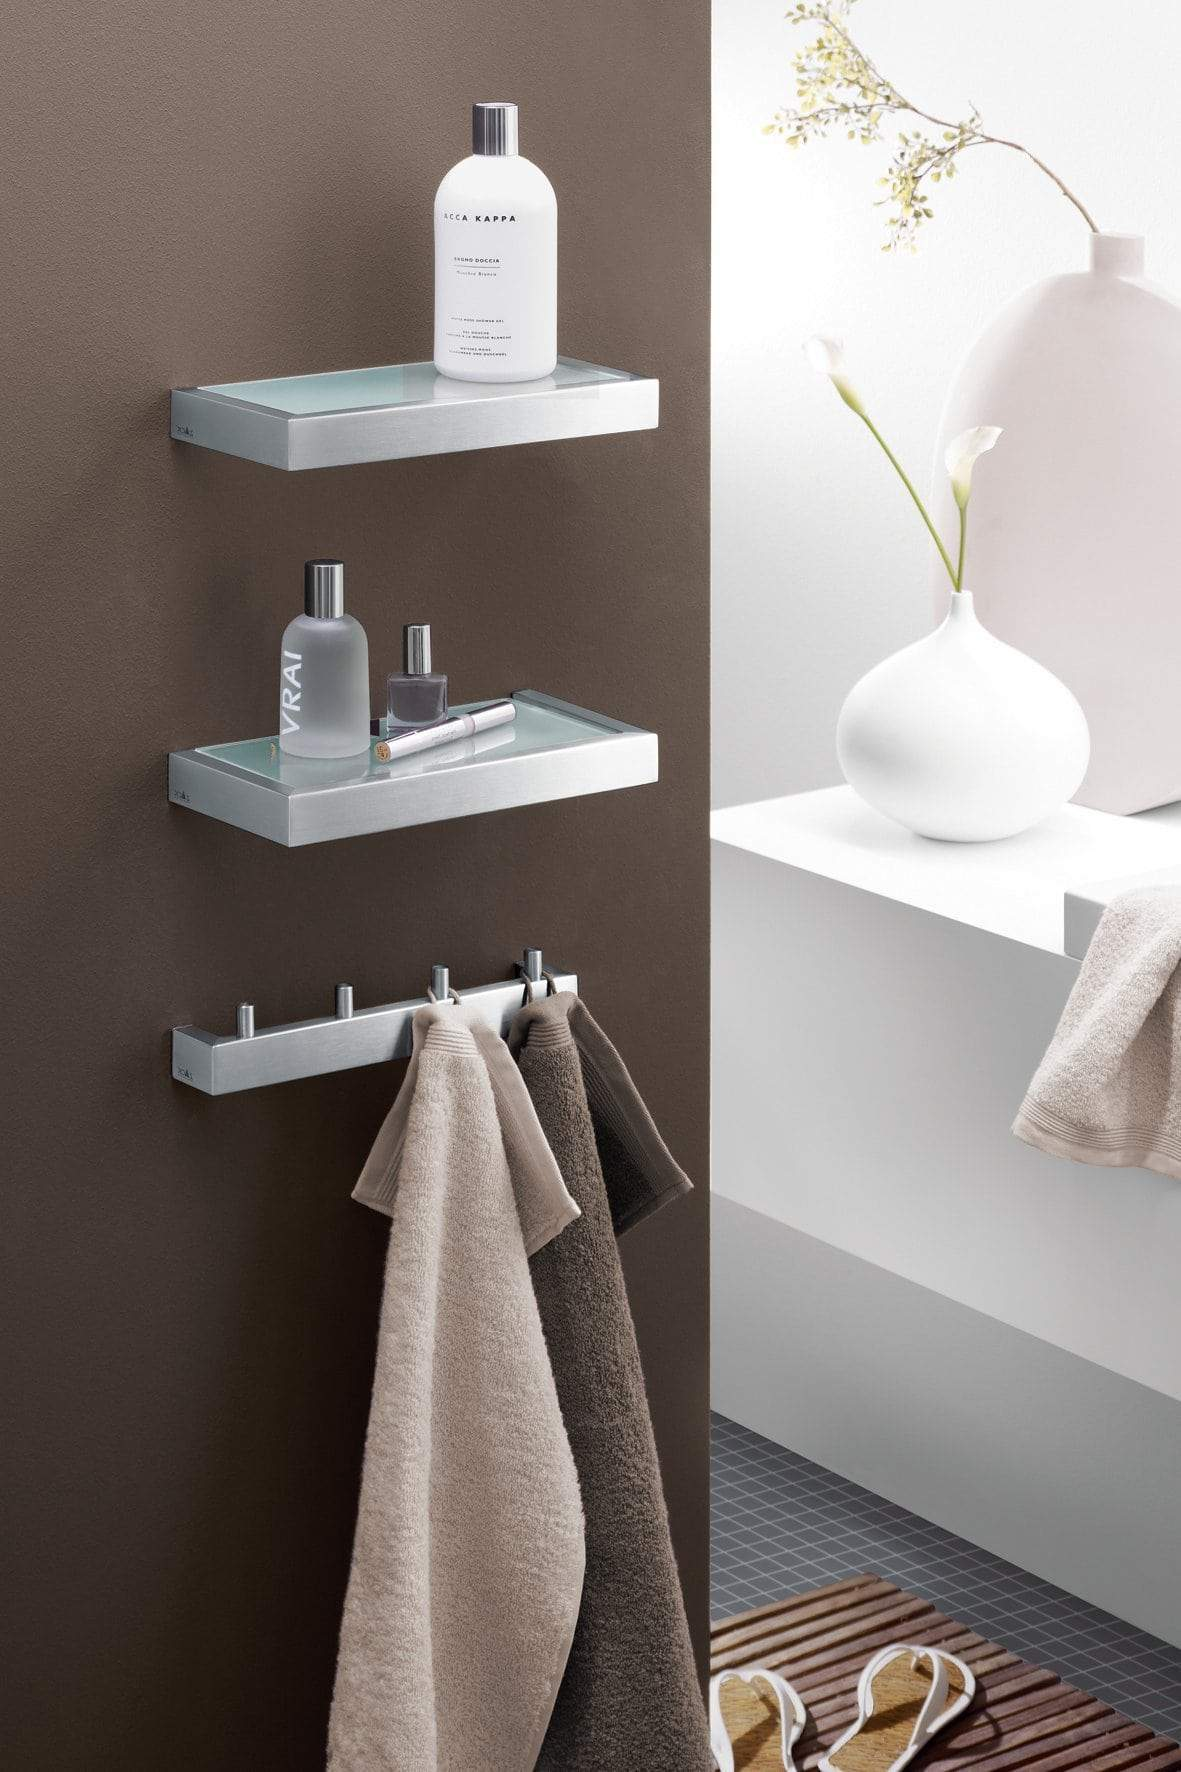 Zack 40389 Linea Wall Mounted Towel Hook Rail for 4 Towels